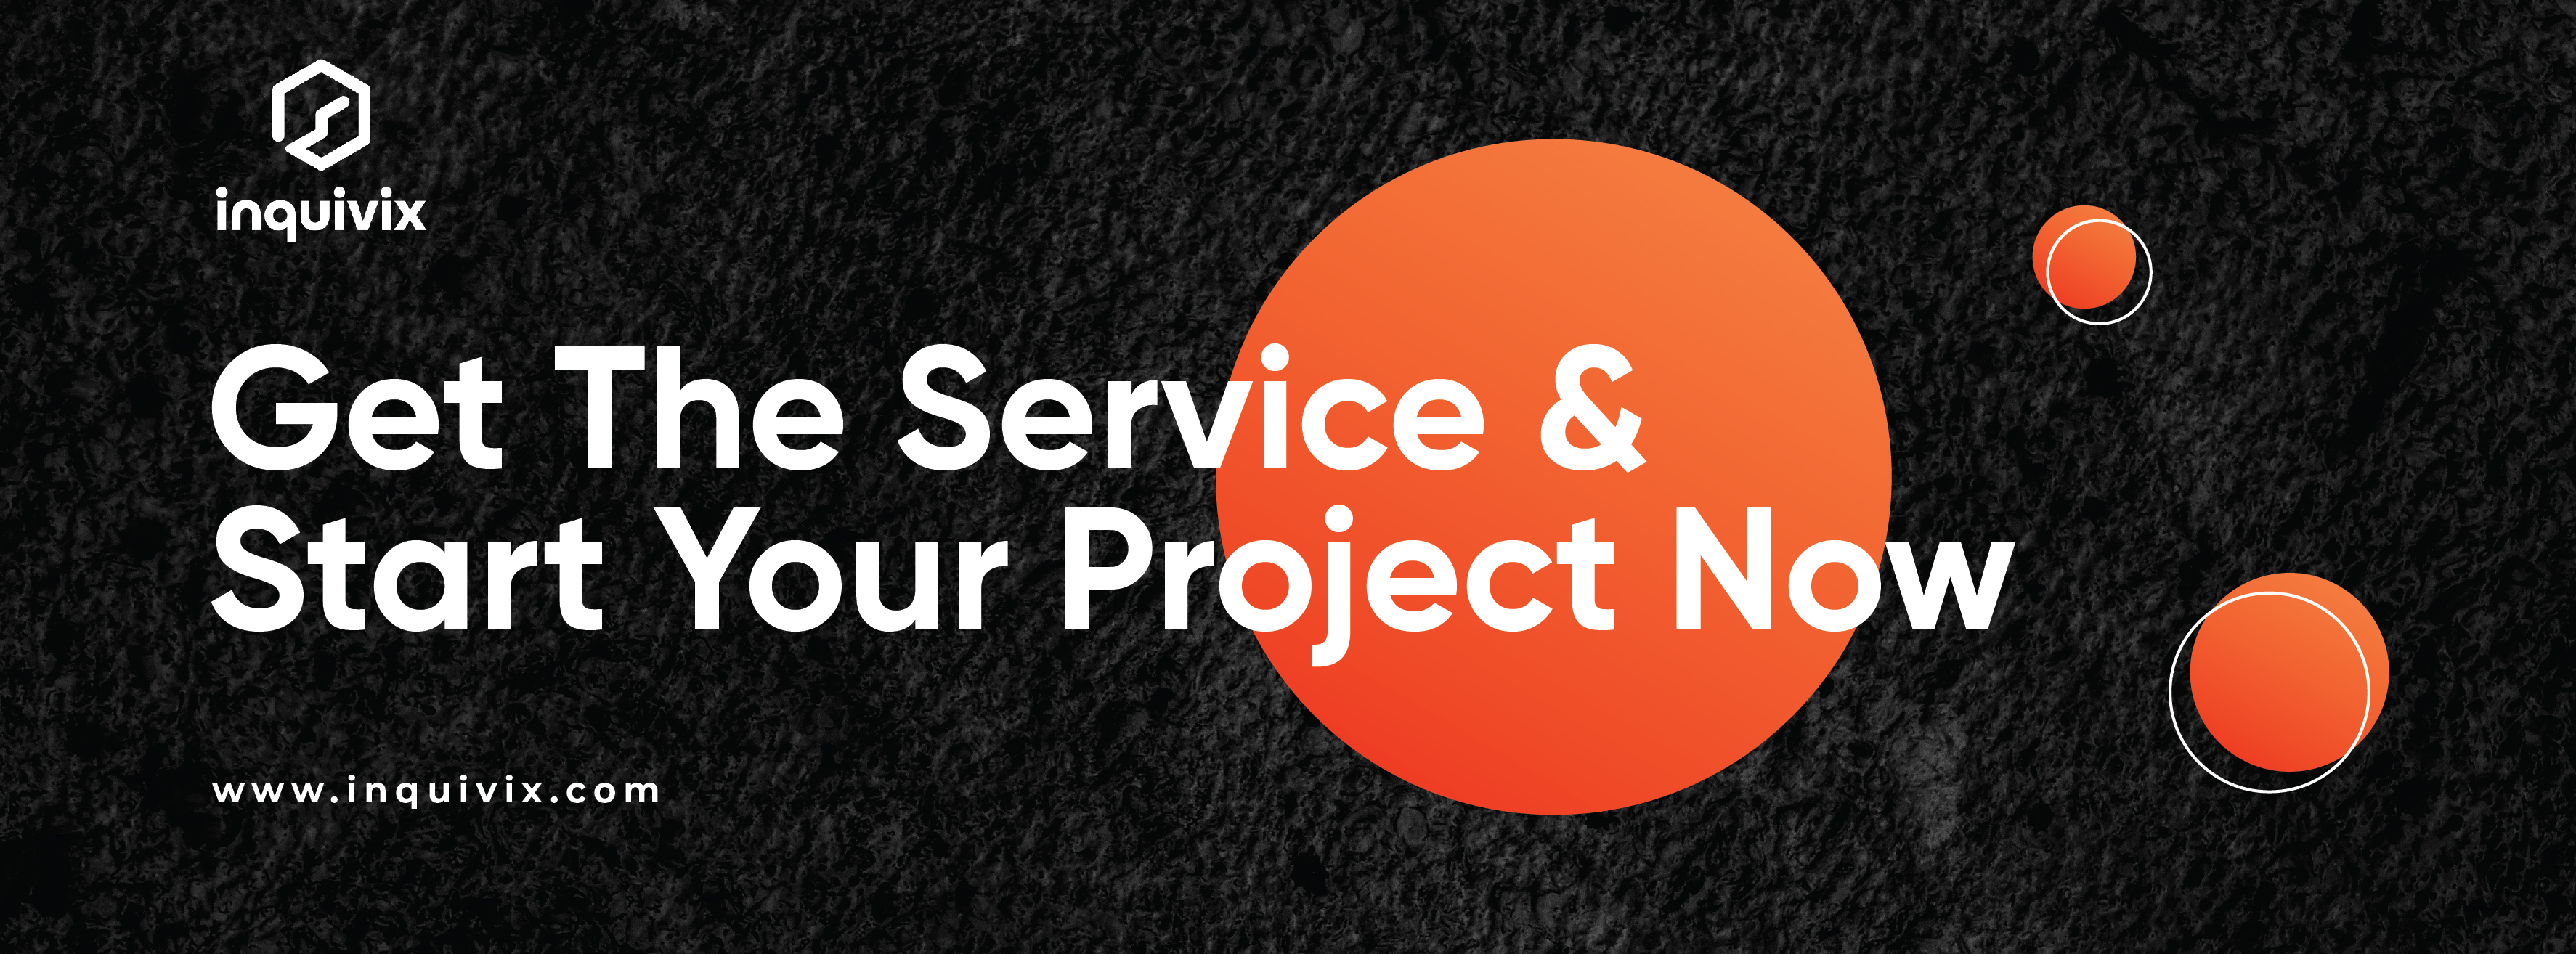 Get the Service & Start Your Project Now